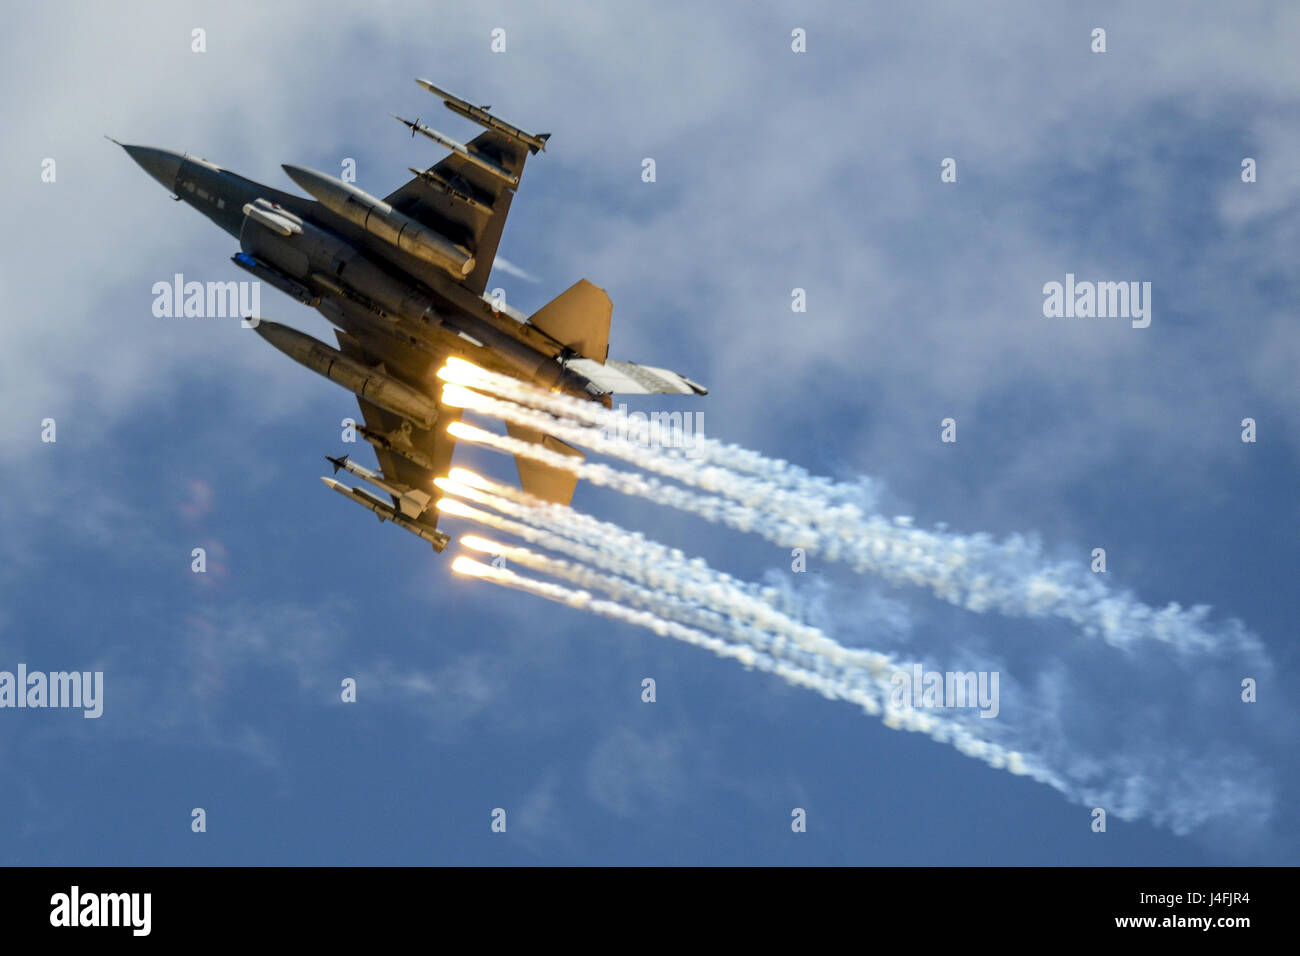 U.S. Air Force F-16 Fighting Falcon Stock Photo